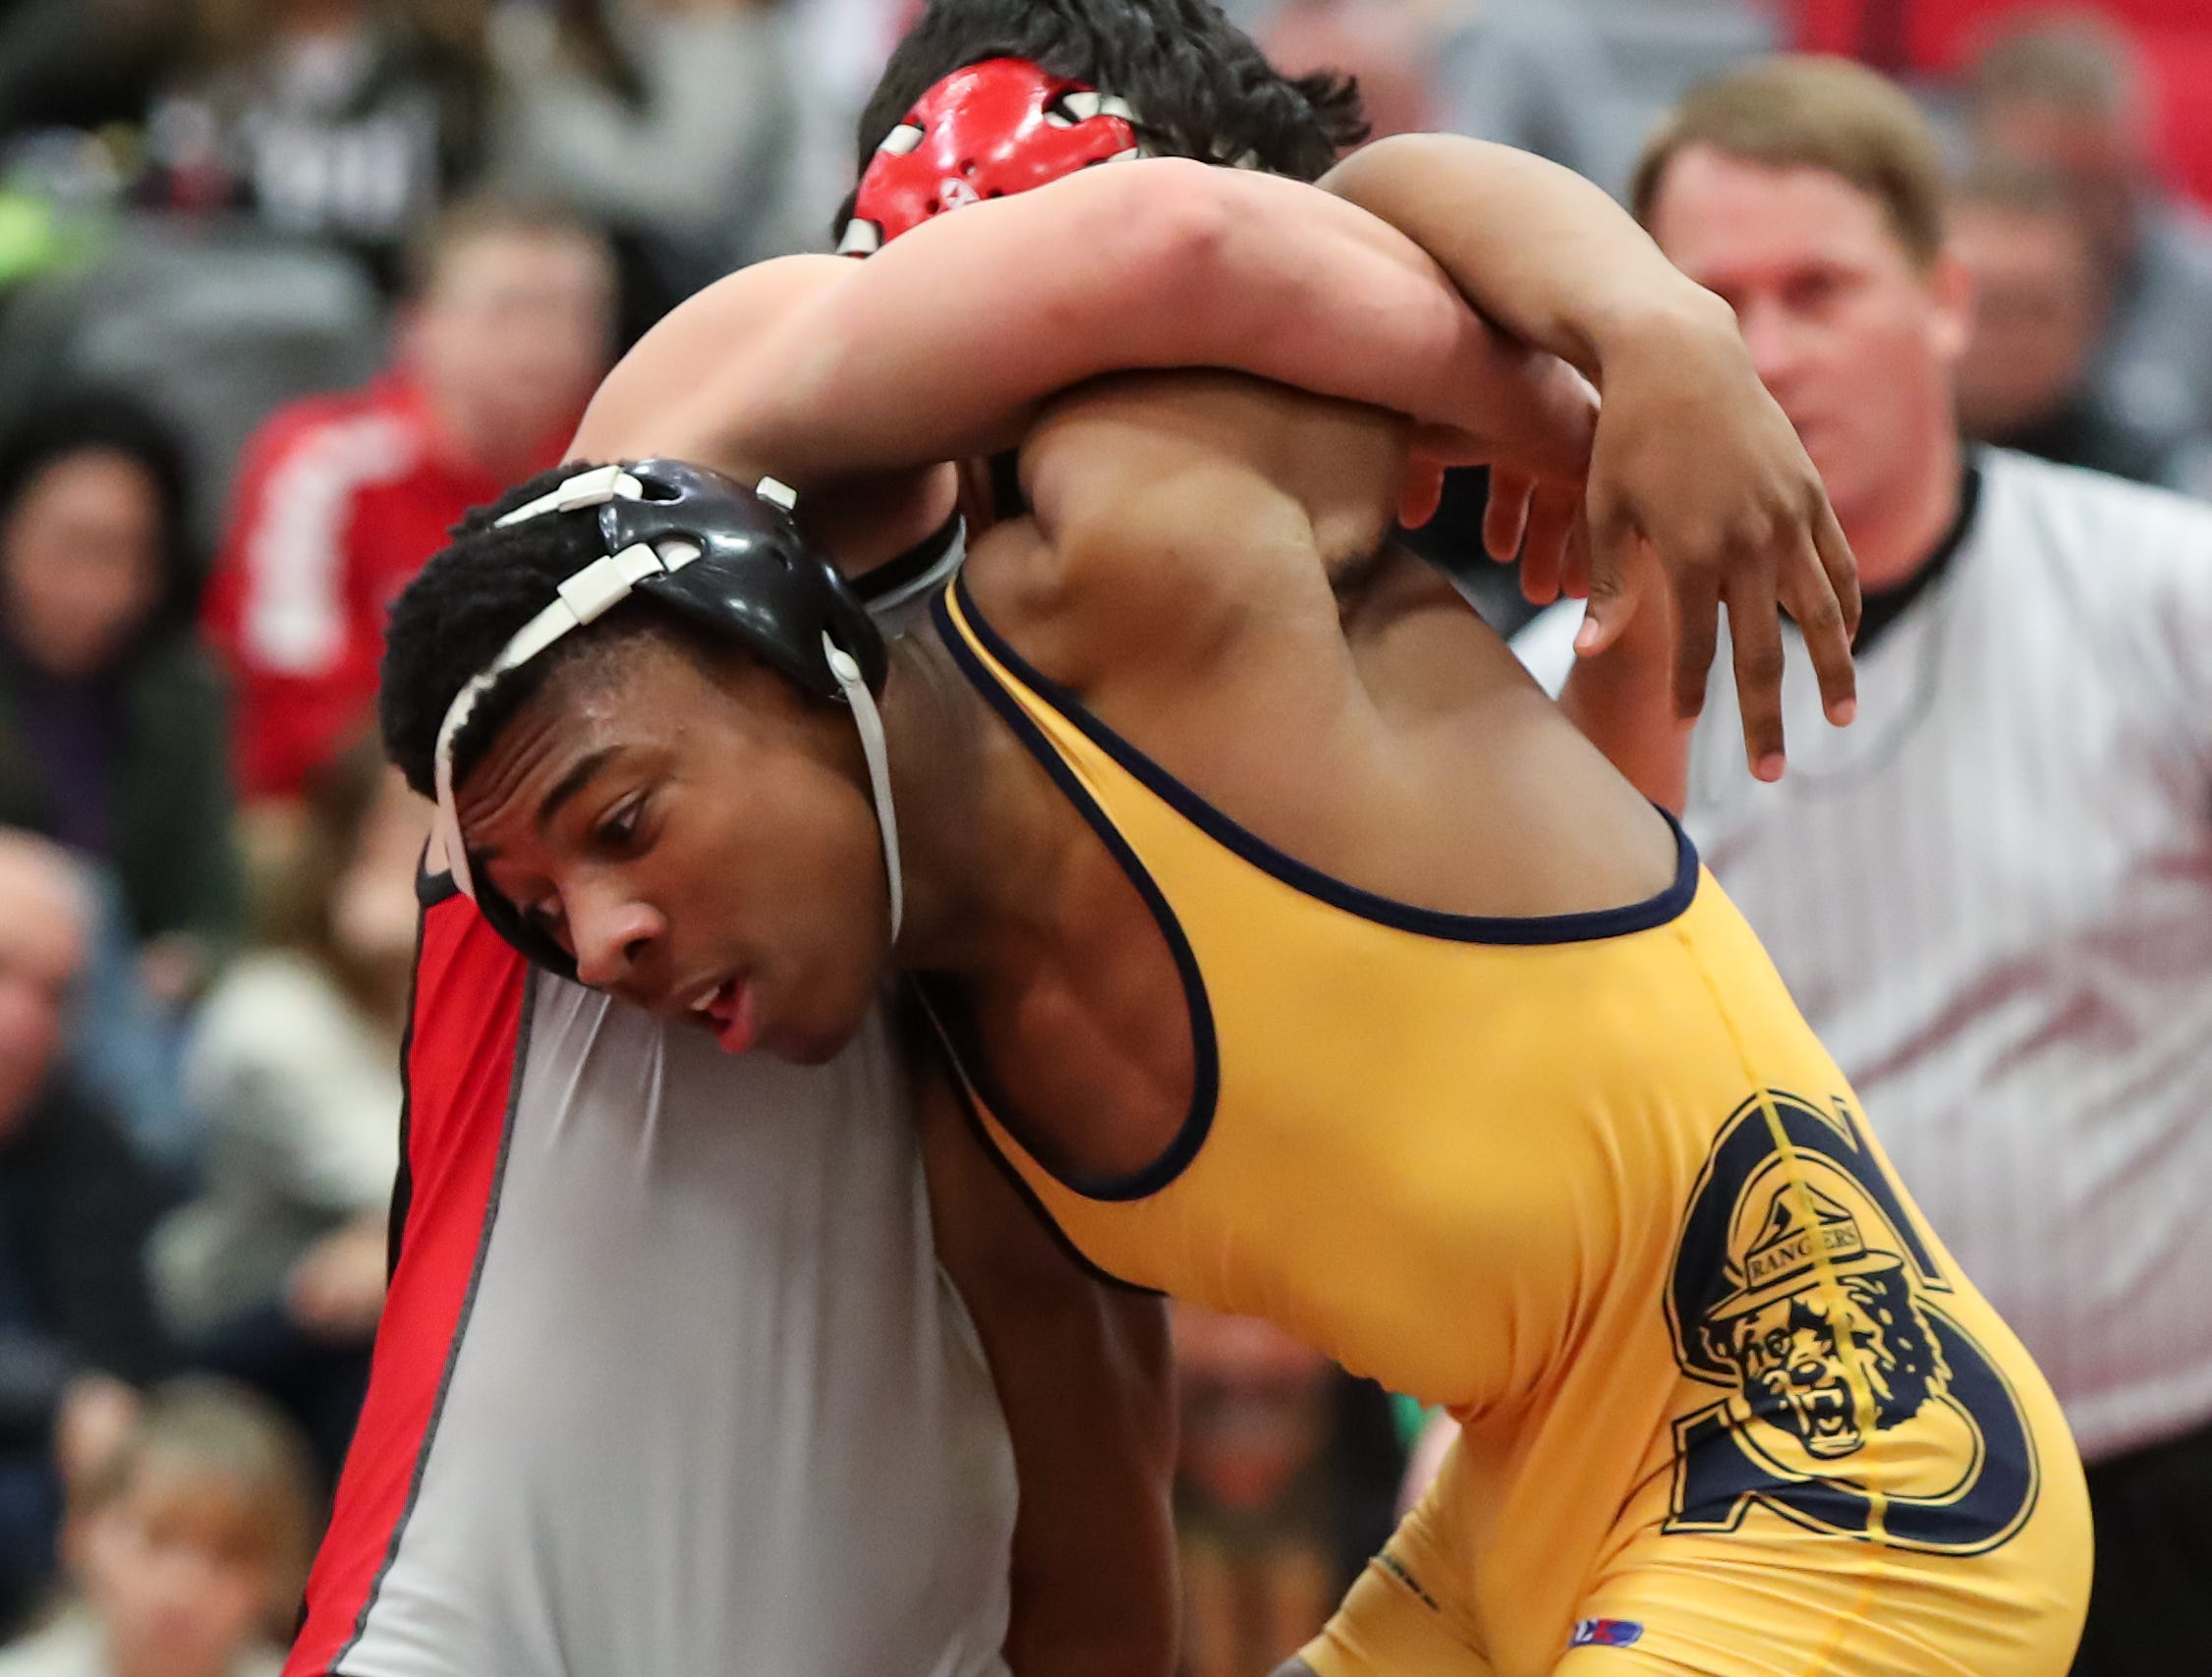 Spencerport's Dexter Craig wrestles Hilton's Mike Fronczak in the 160 pound weight class during the Section V high school Division I wrestling dual meet championship at Hilton High School on Jan. 5, 2018.